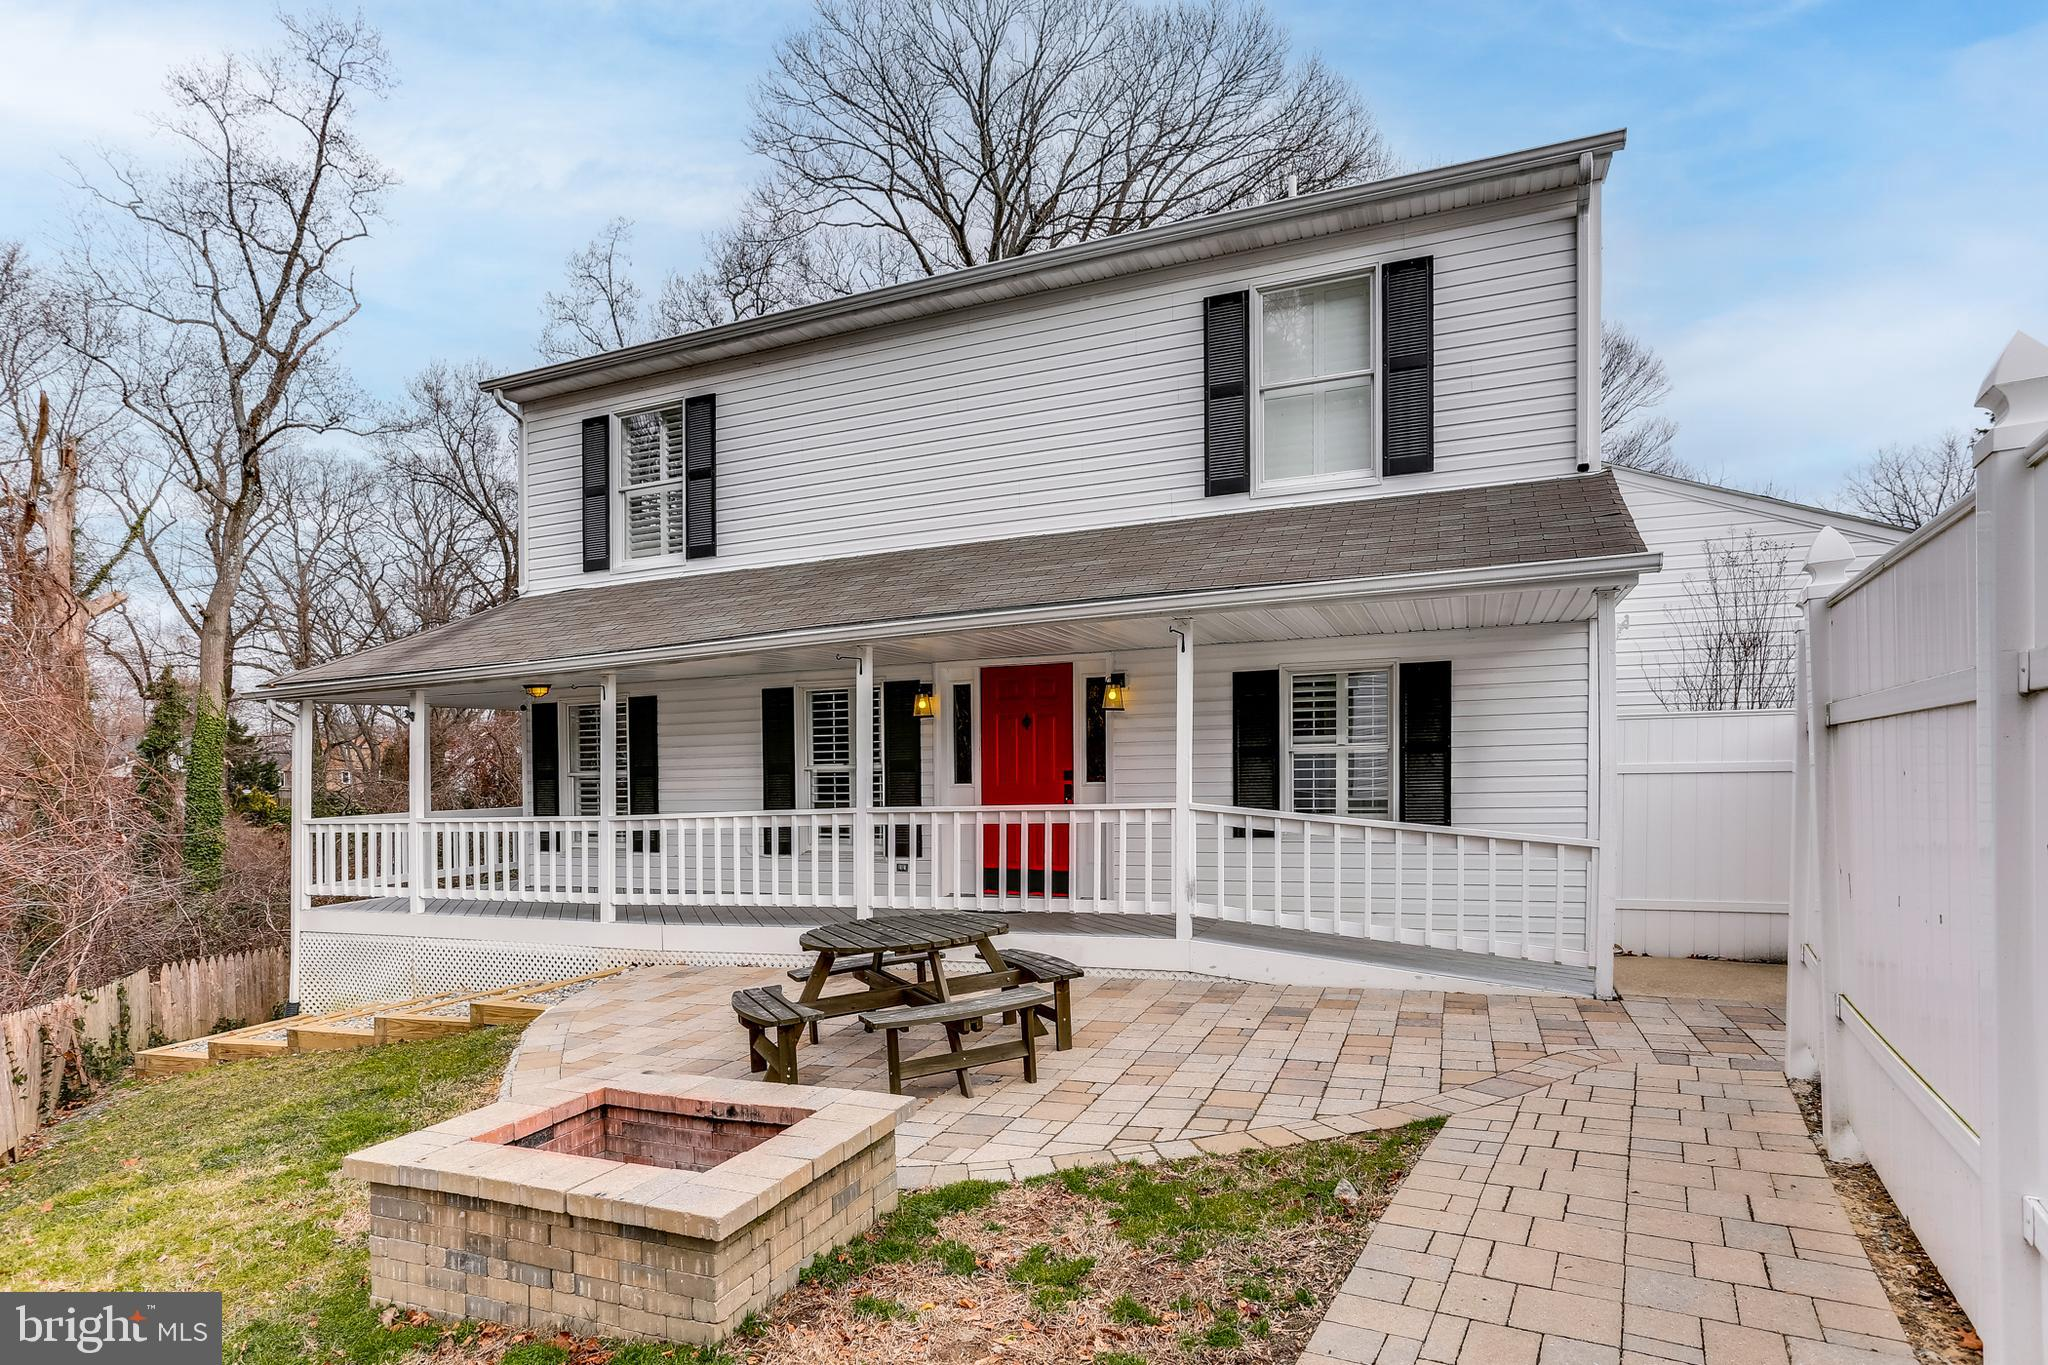 Totally renovated and ready to move in!!!  Coveted Broadneck school district: Belvedere Elementary,